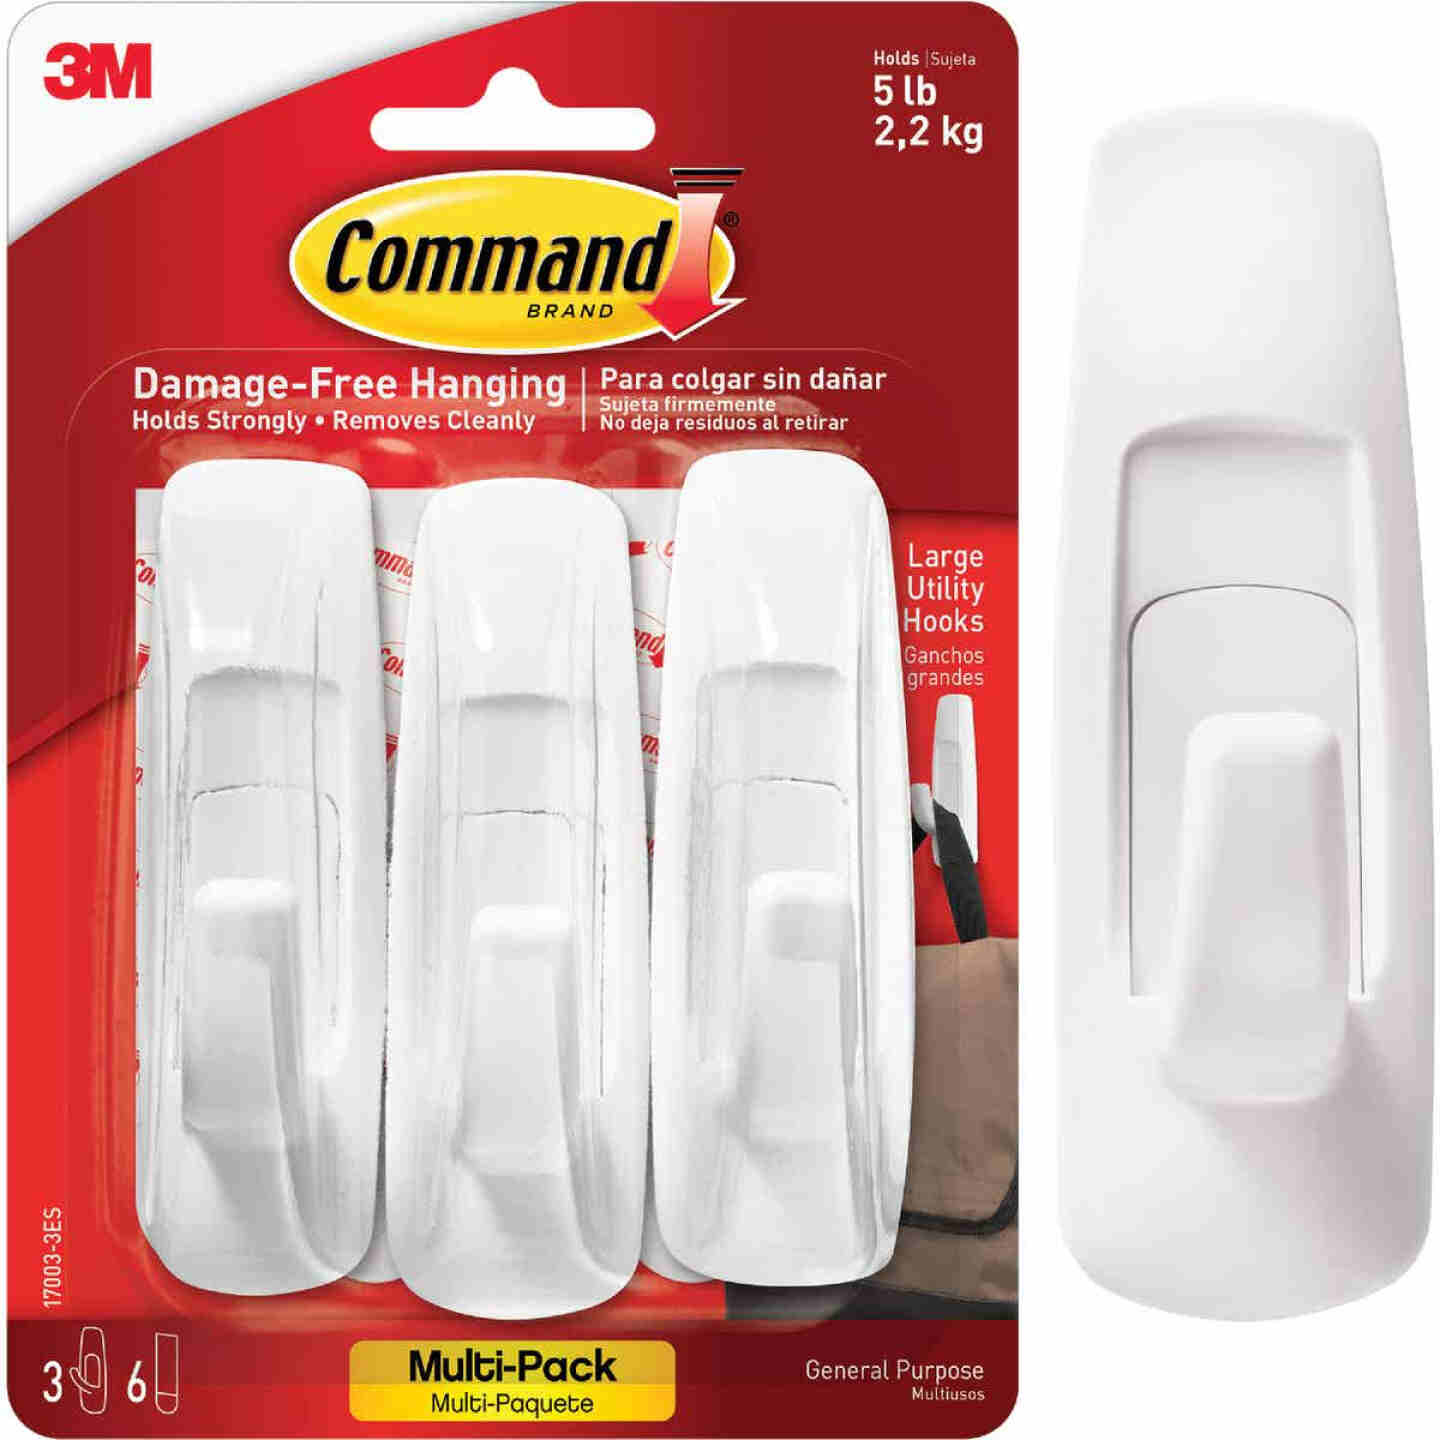 3M Command Large Utility Adhesive Hook (3-Pack) Image 1